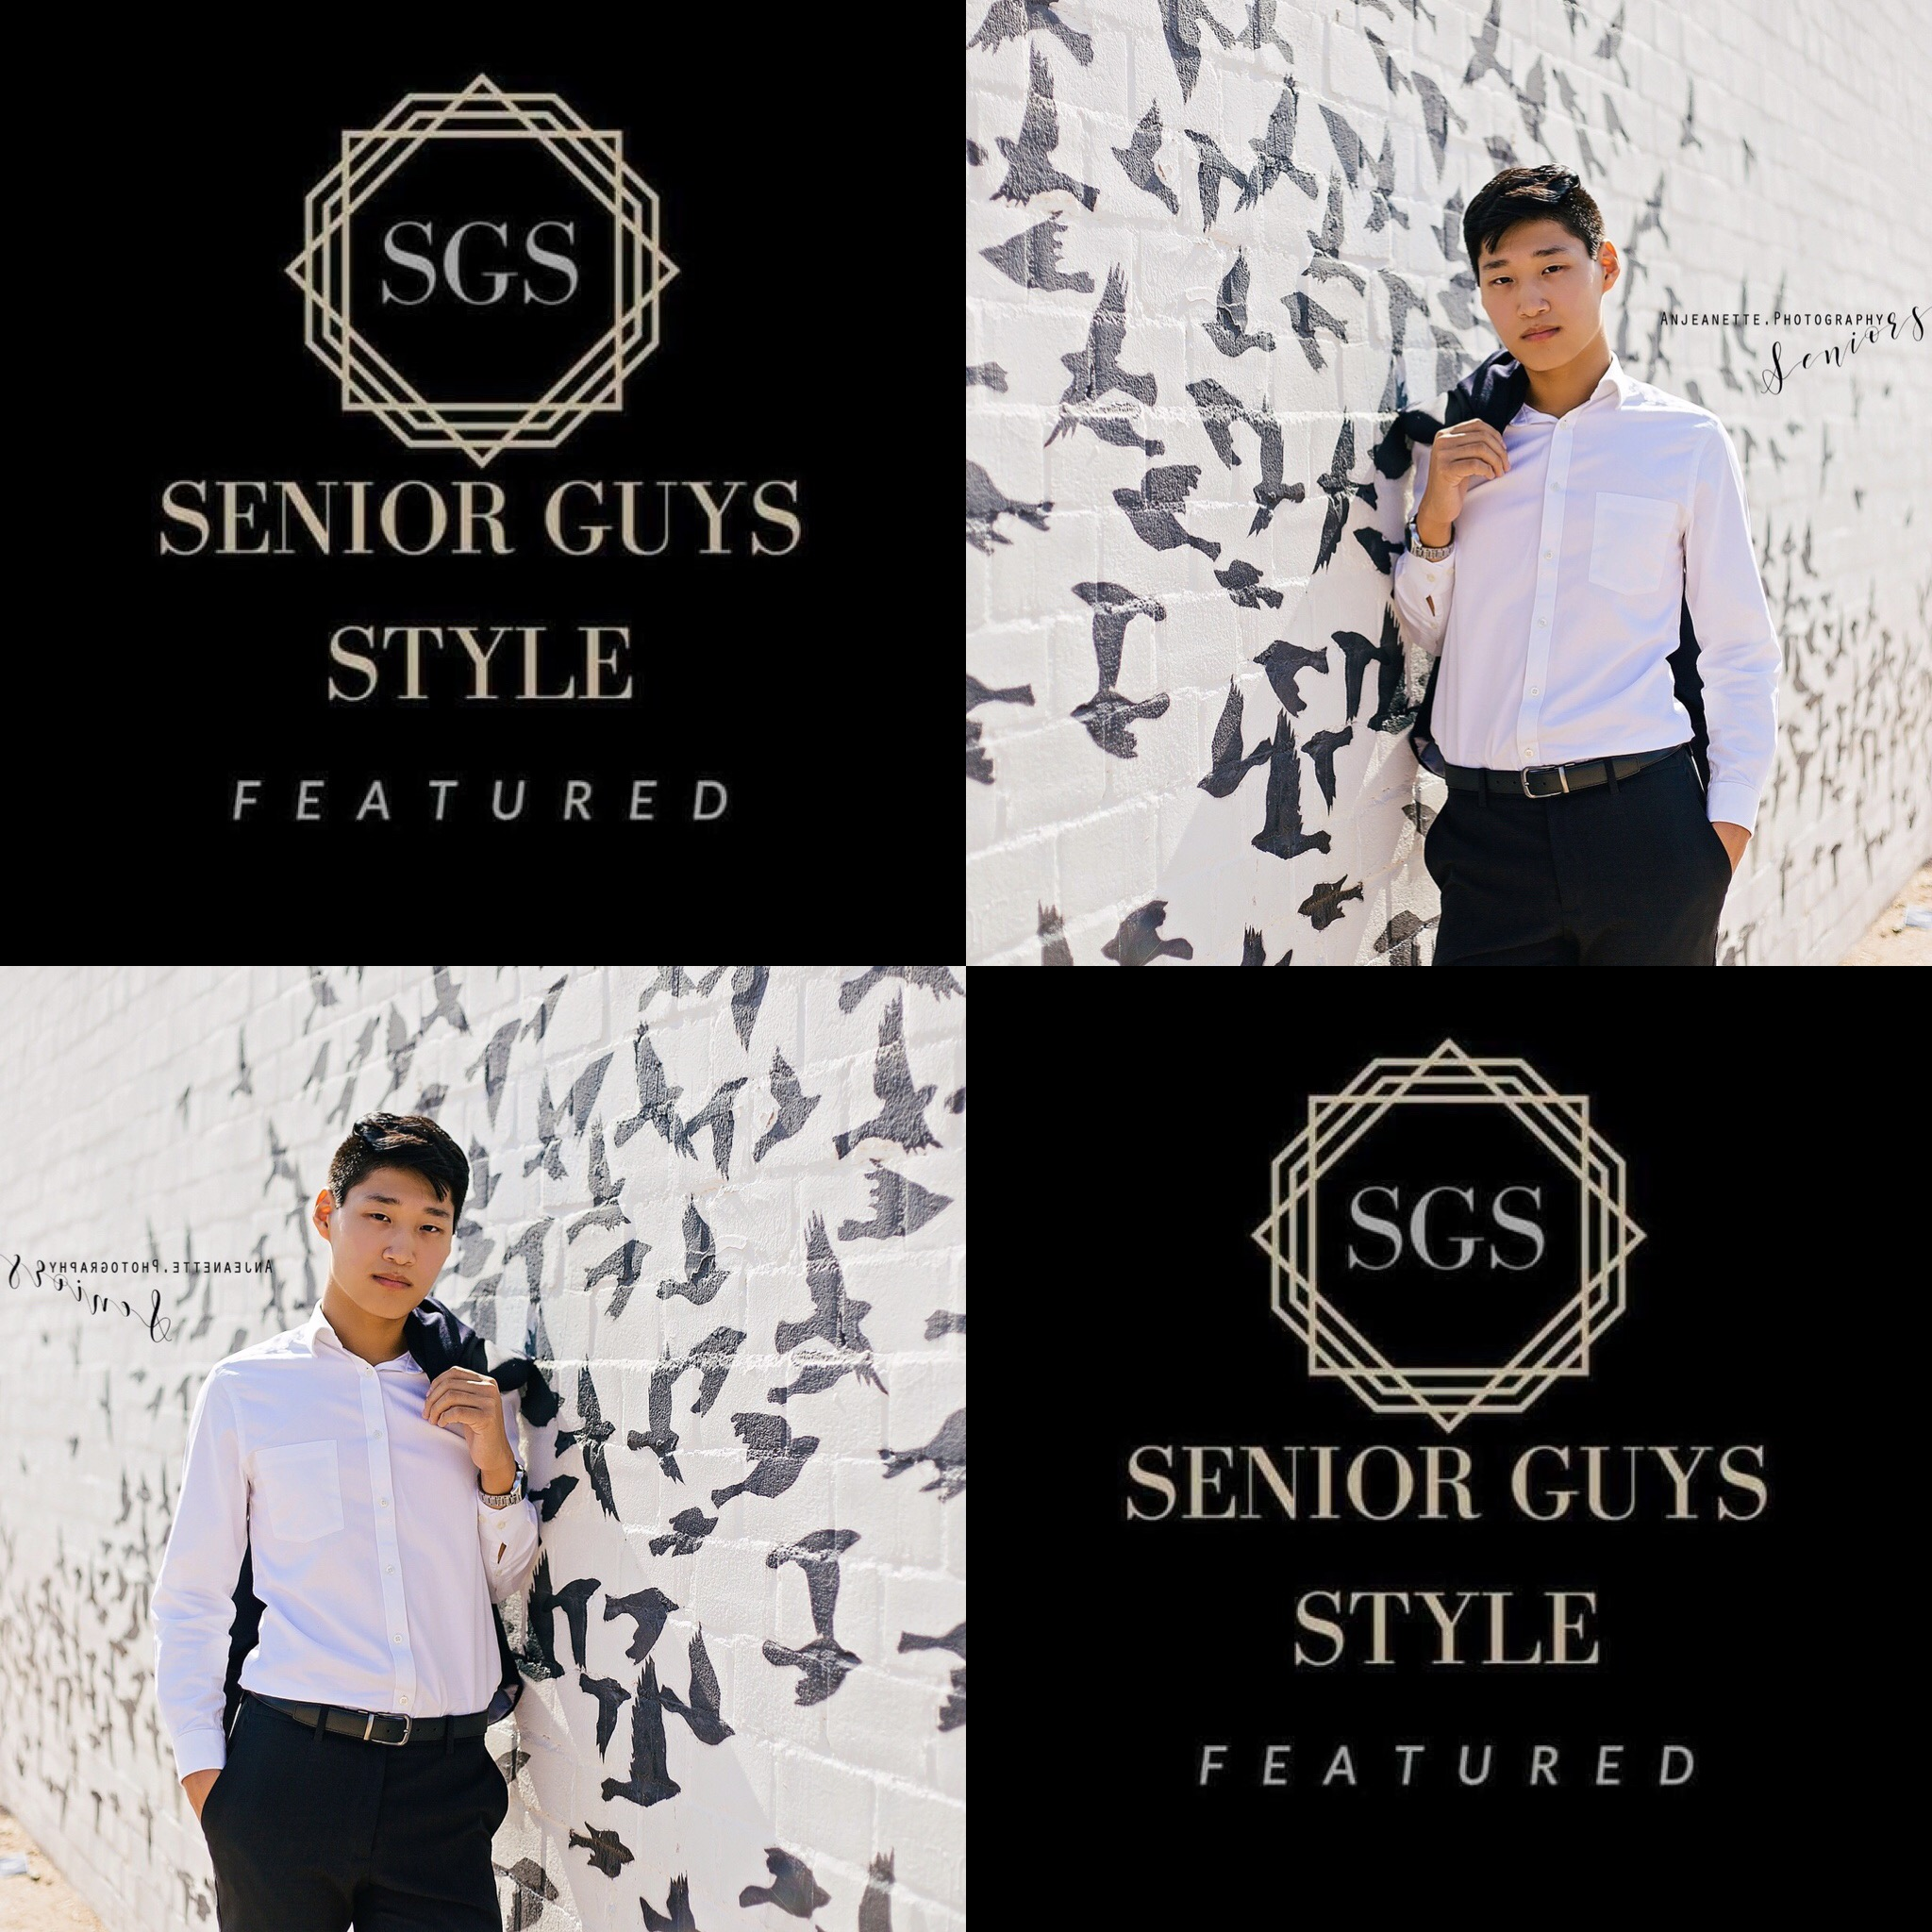 Featured in Senior Guys Style!